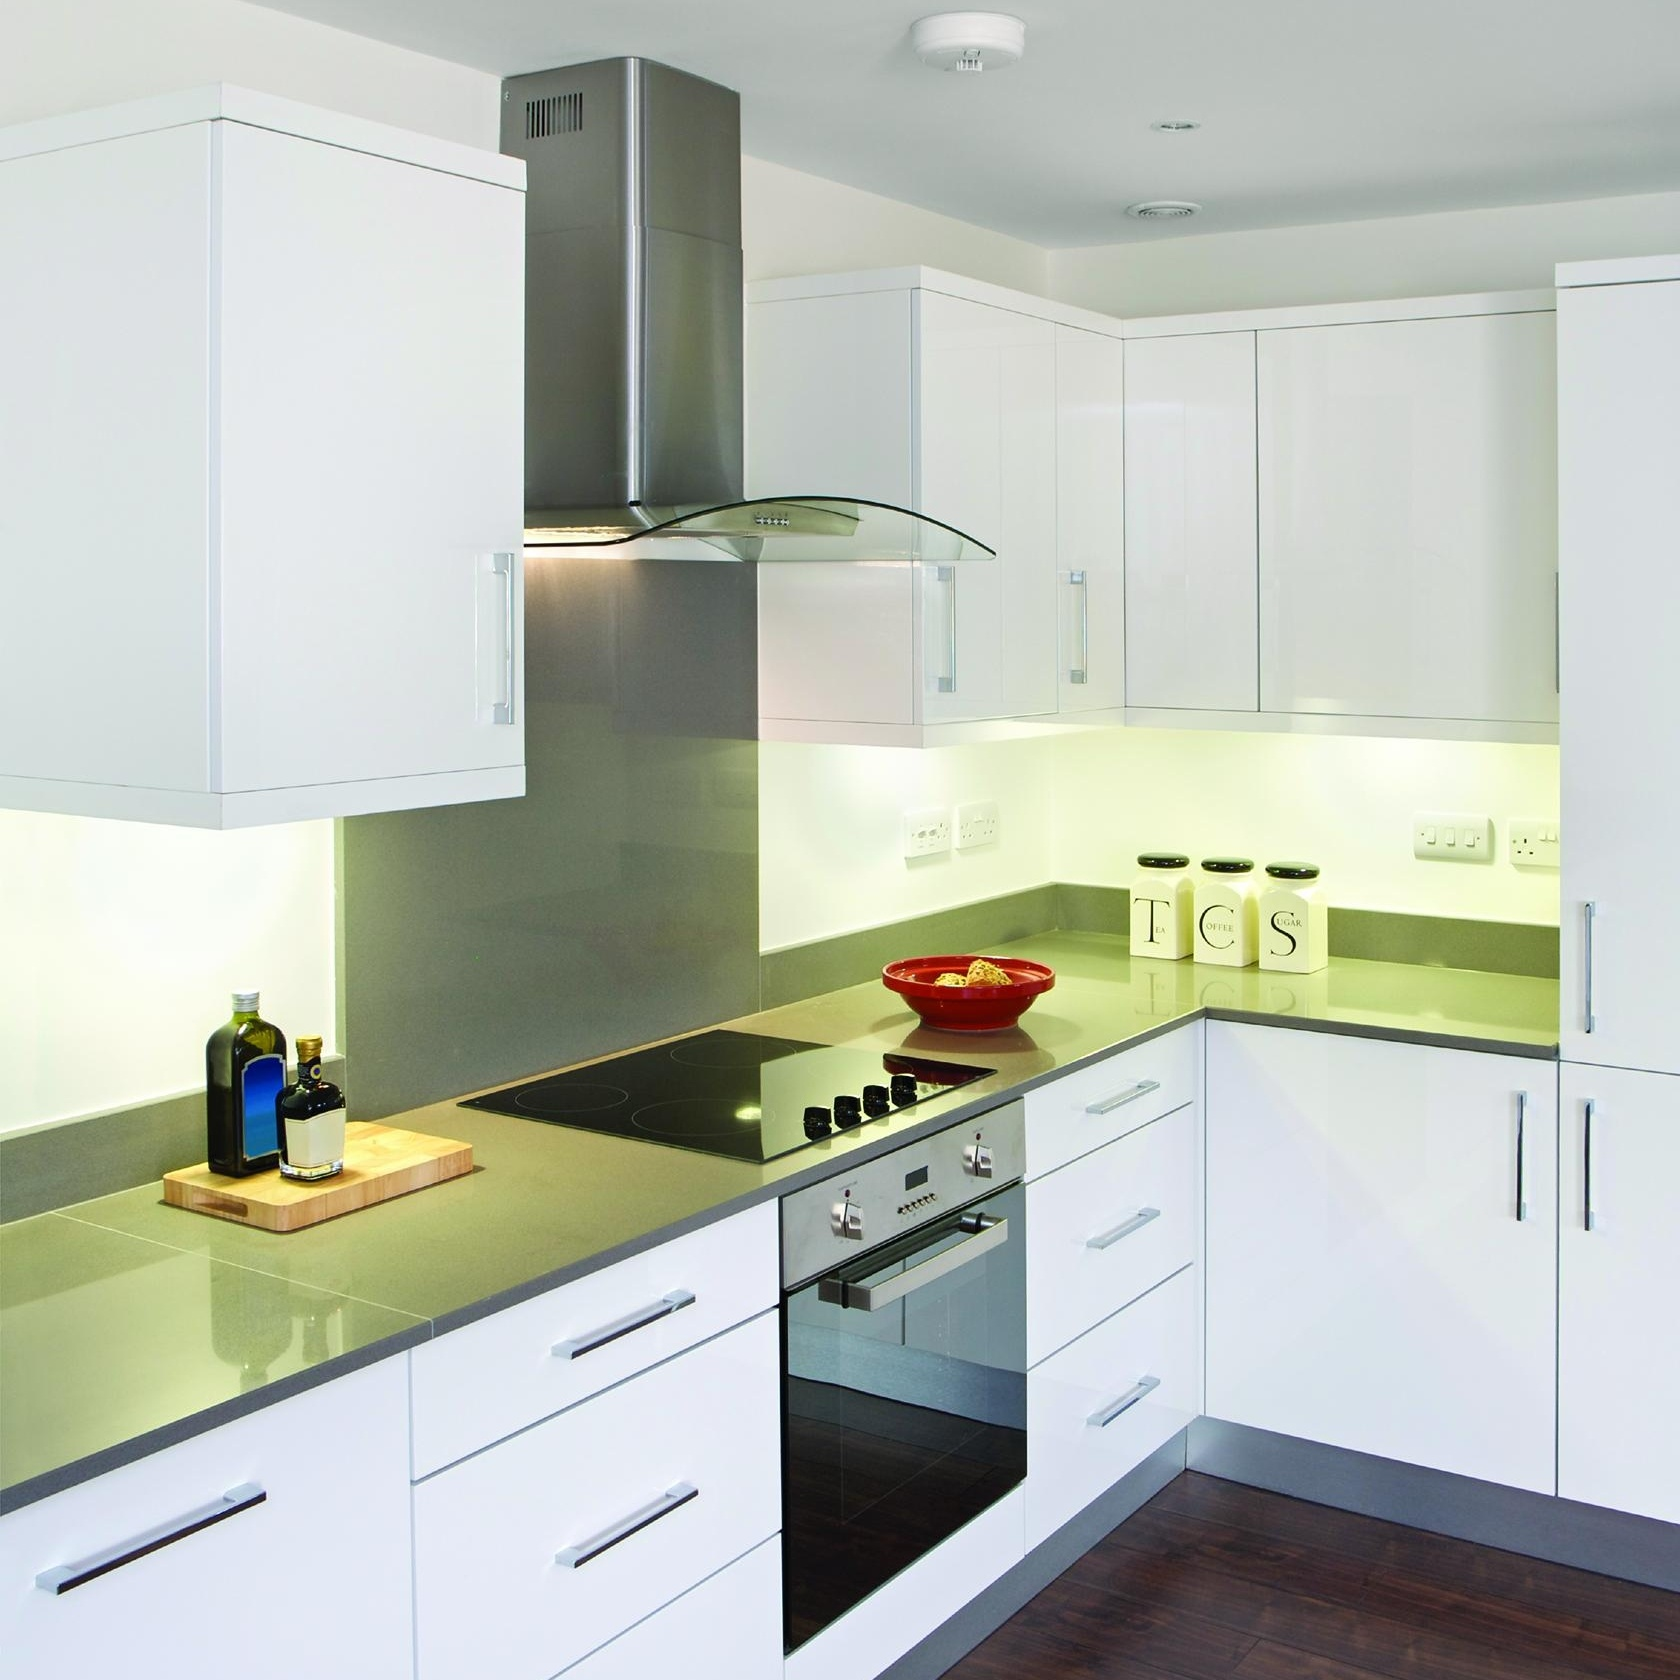 Diy Kitchen Light Fixtures Part 2: The DIY Guide To Under Cabinet Kitchen Lighting: Part Two